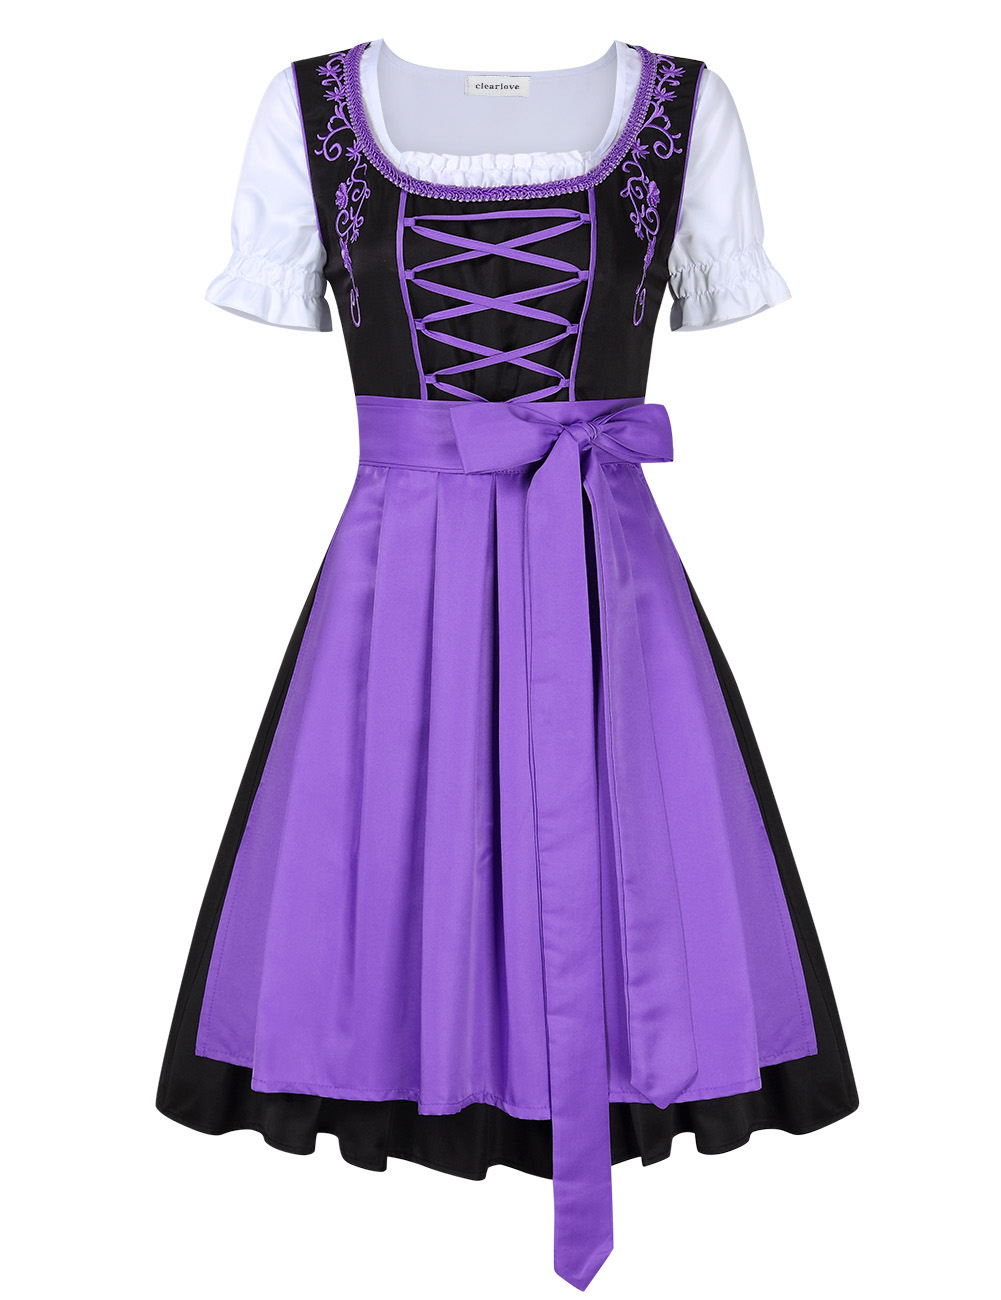 [EU Direct] Clearlove Women's Classic Dress Three Pieces Suit for German Traditional Oktoberfest Costumes